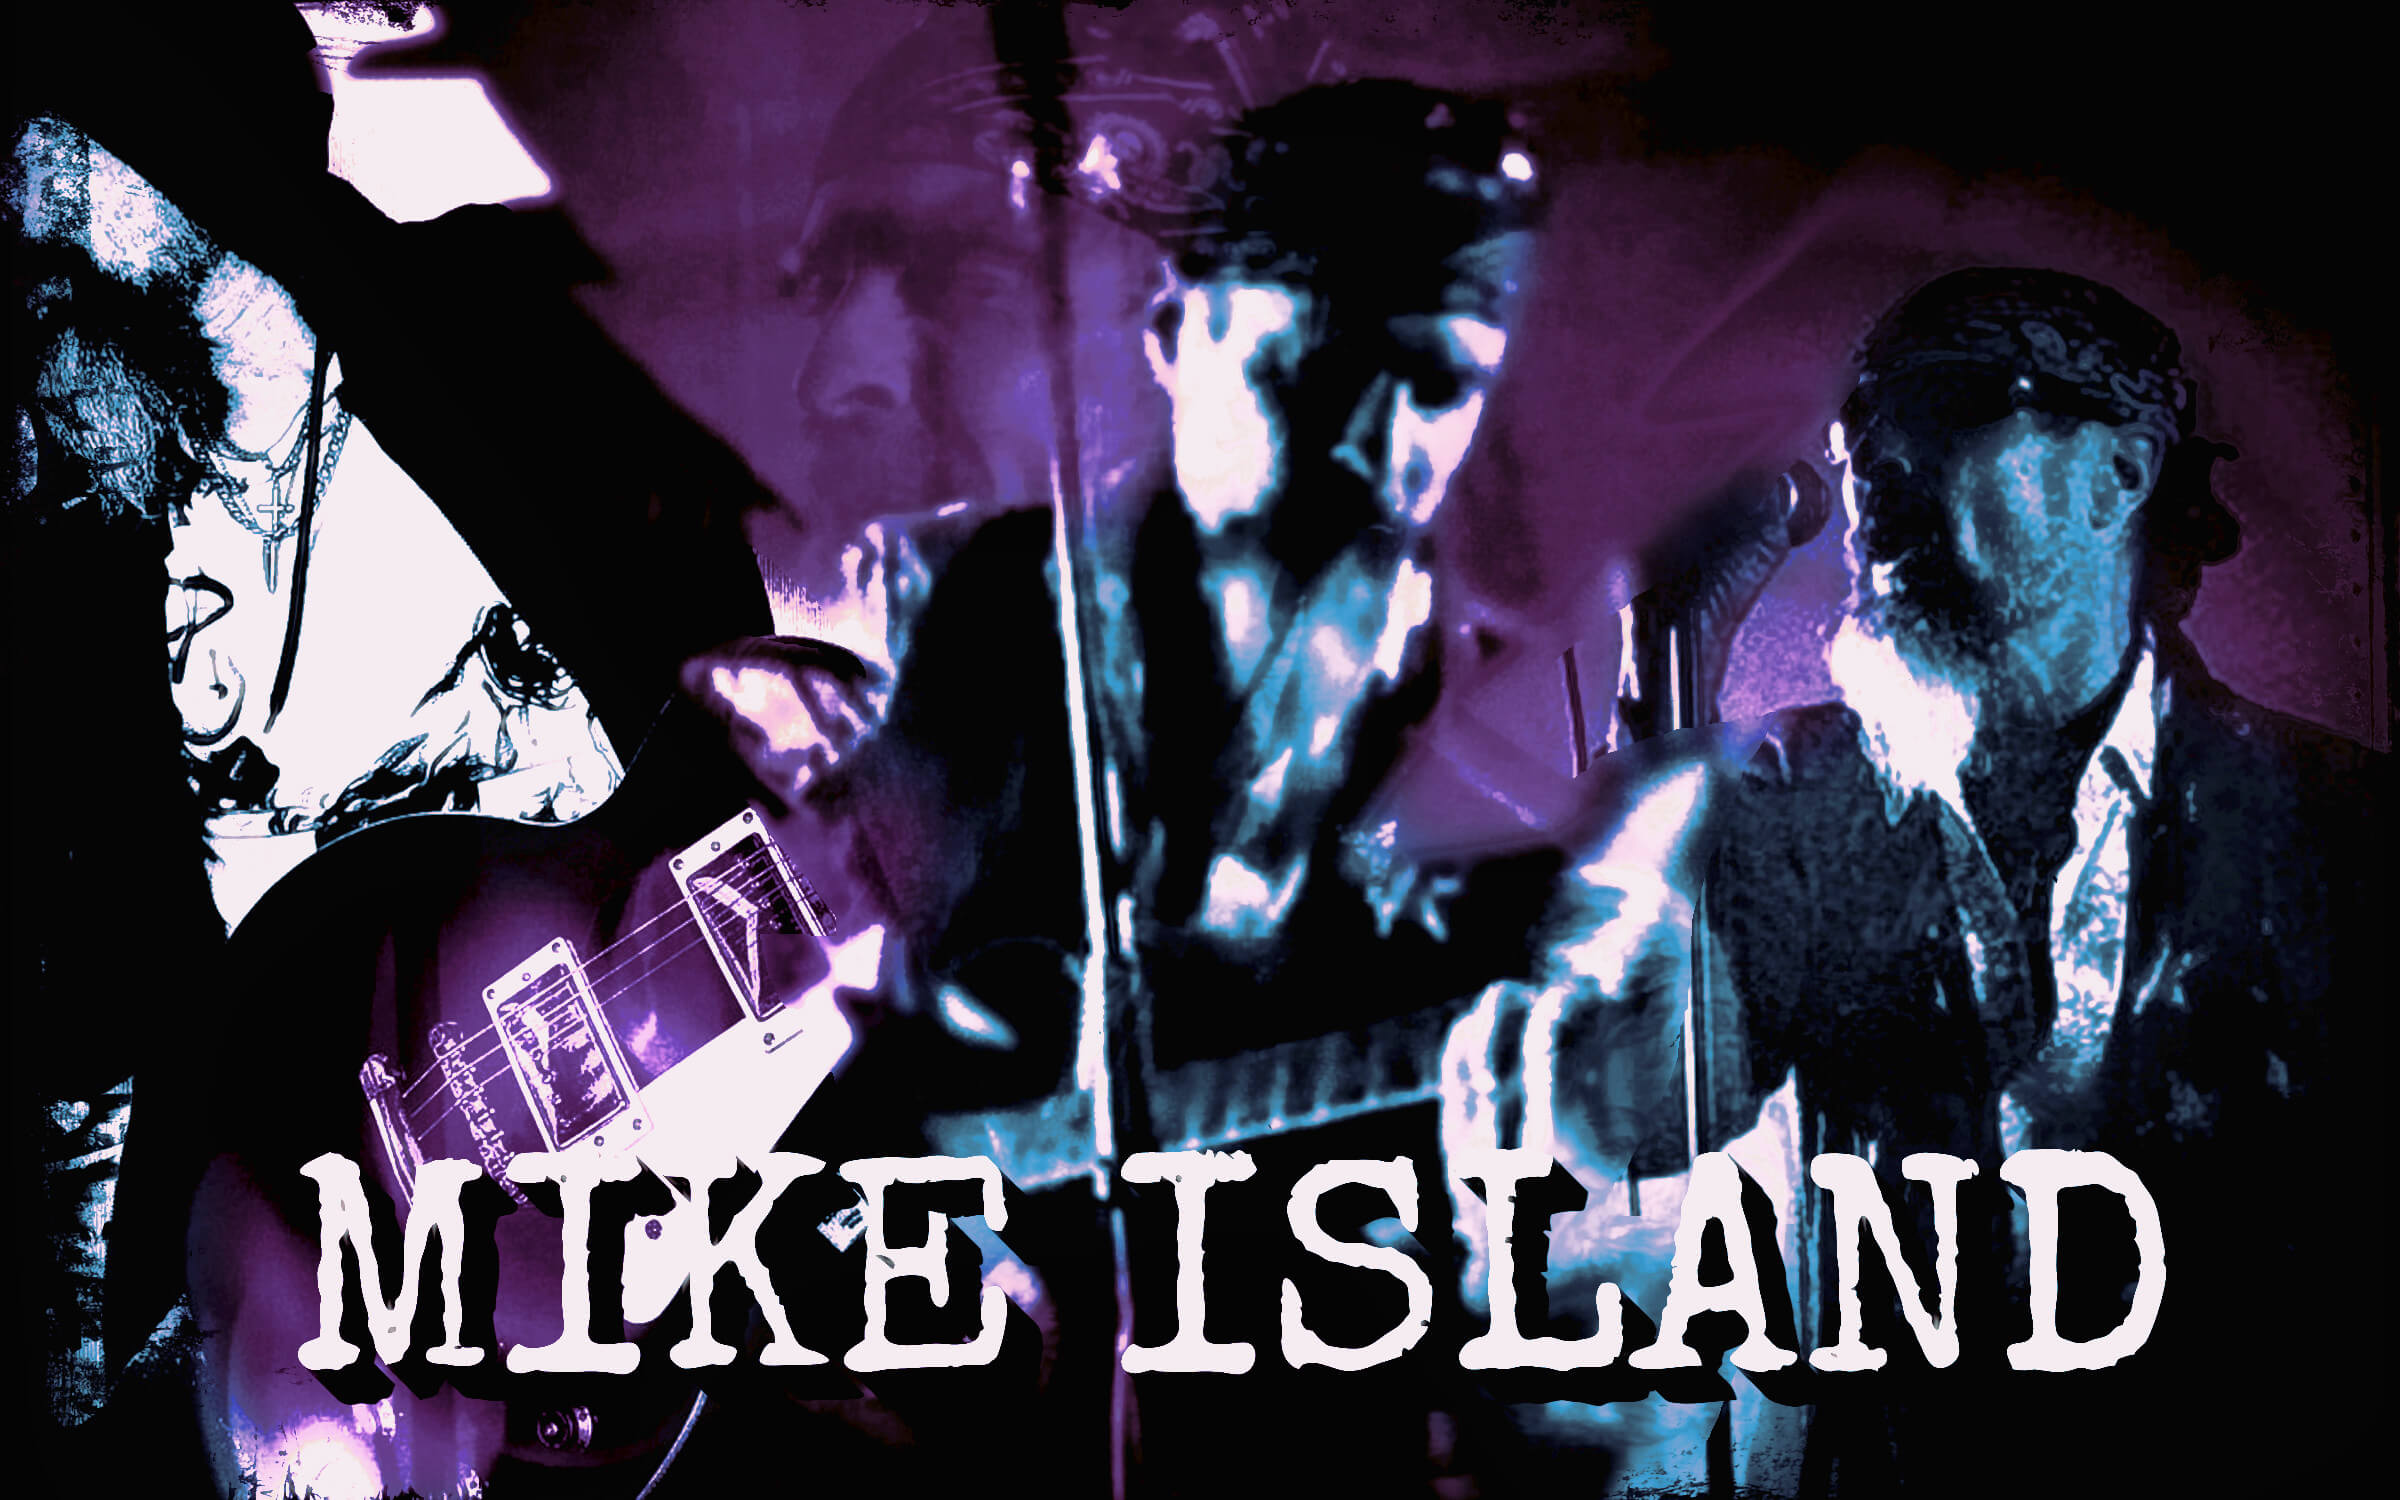 Order Mike Island to bring some edge to your happening.